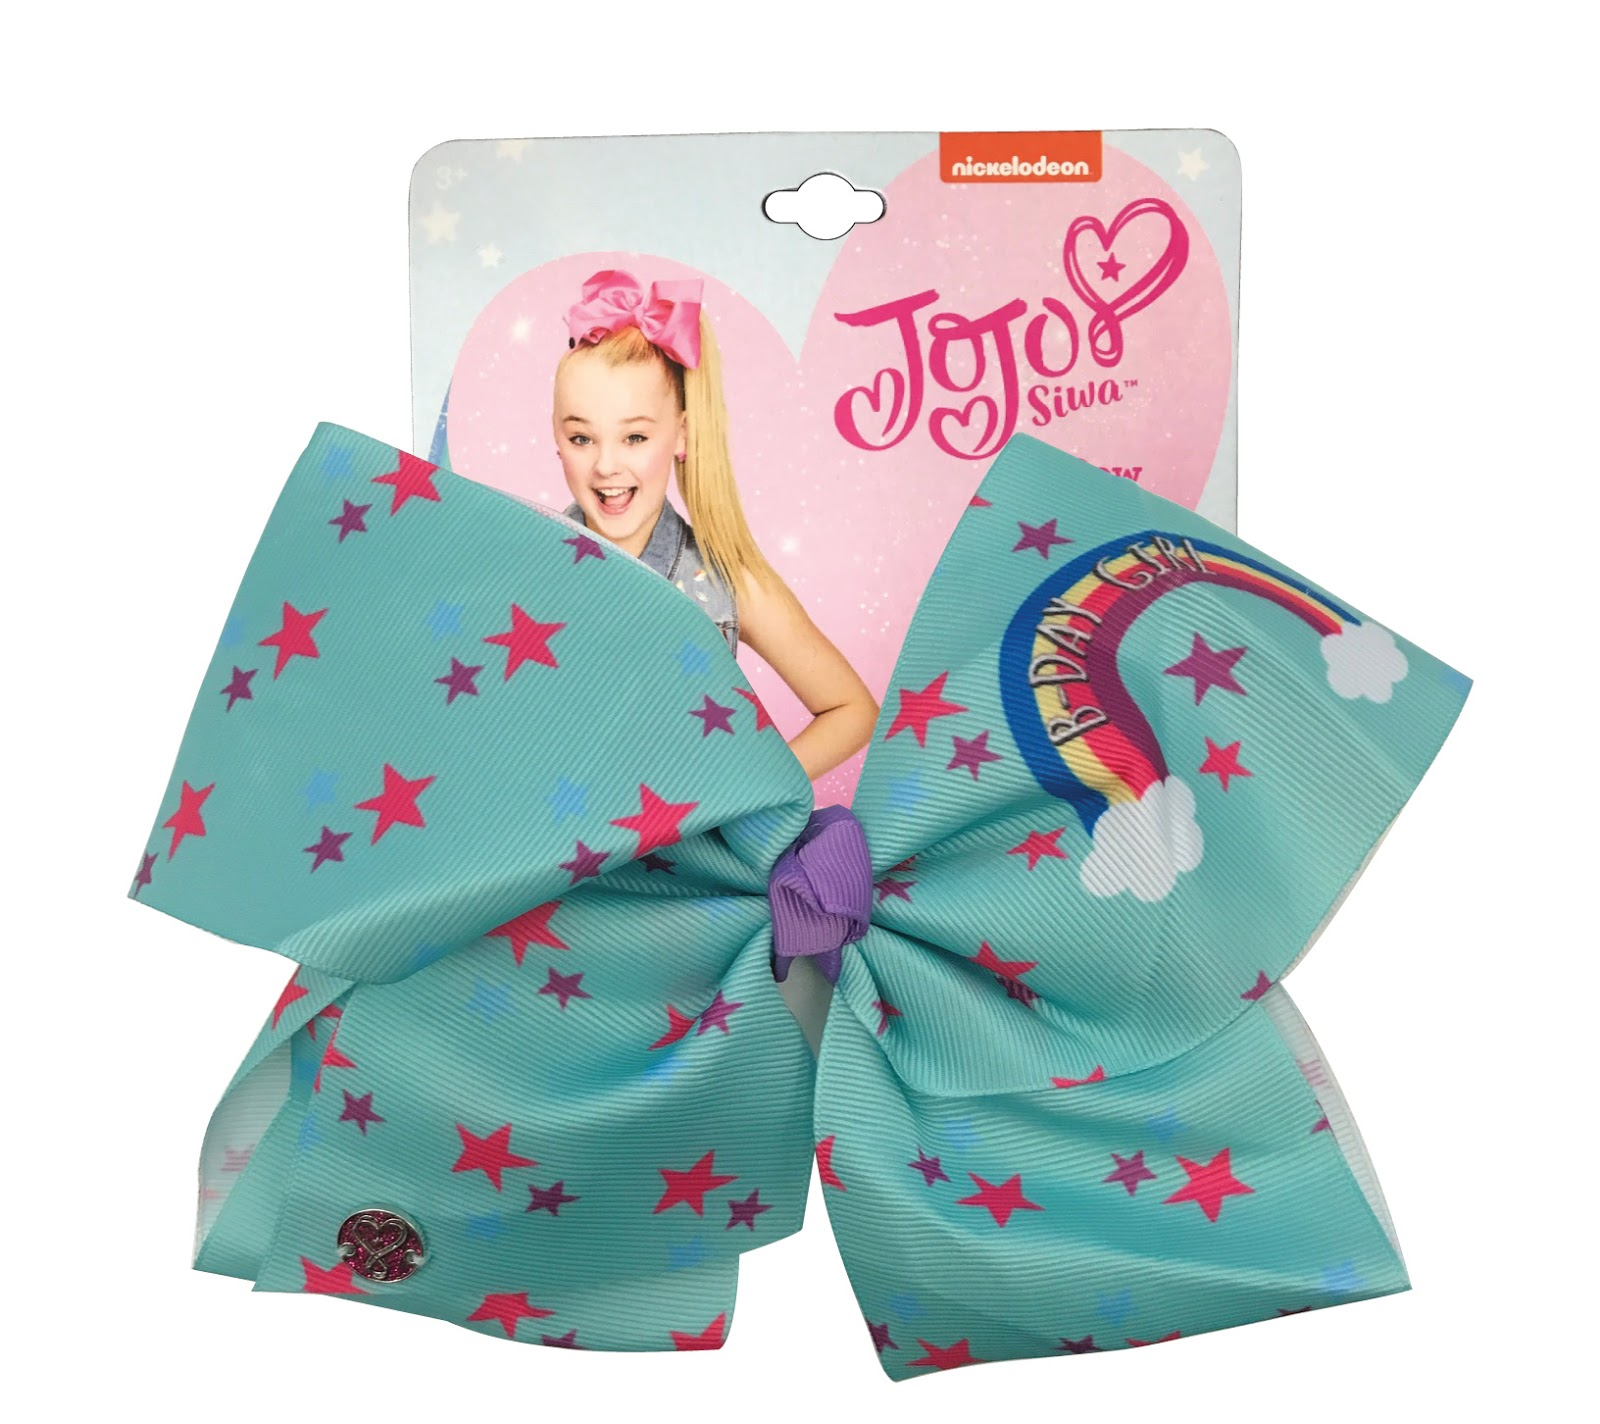 679926bf0b64 ... at JoJo's doll, beauty kits, and fun new bow designs, and check out the  video to hear the star talk all about her latest upcoming Nickelodeon  projects!: